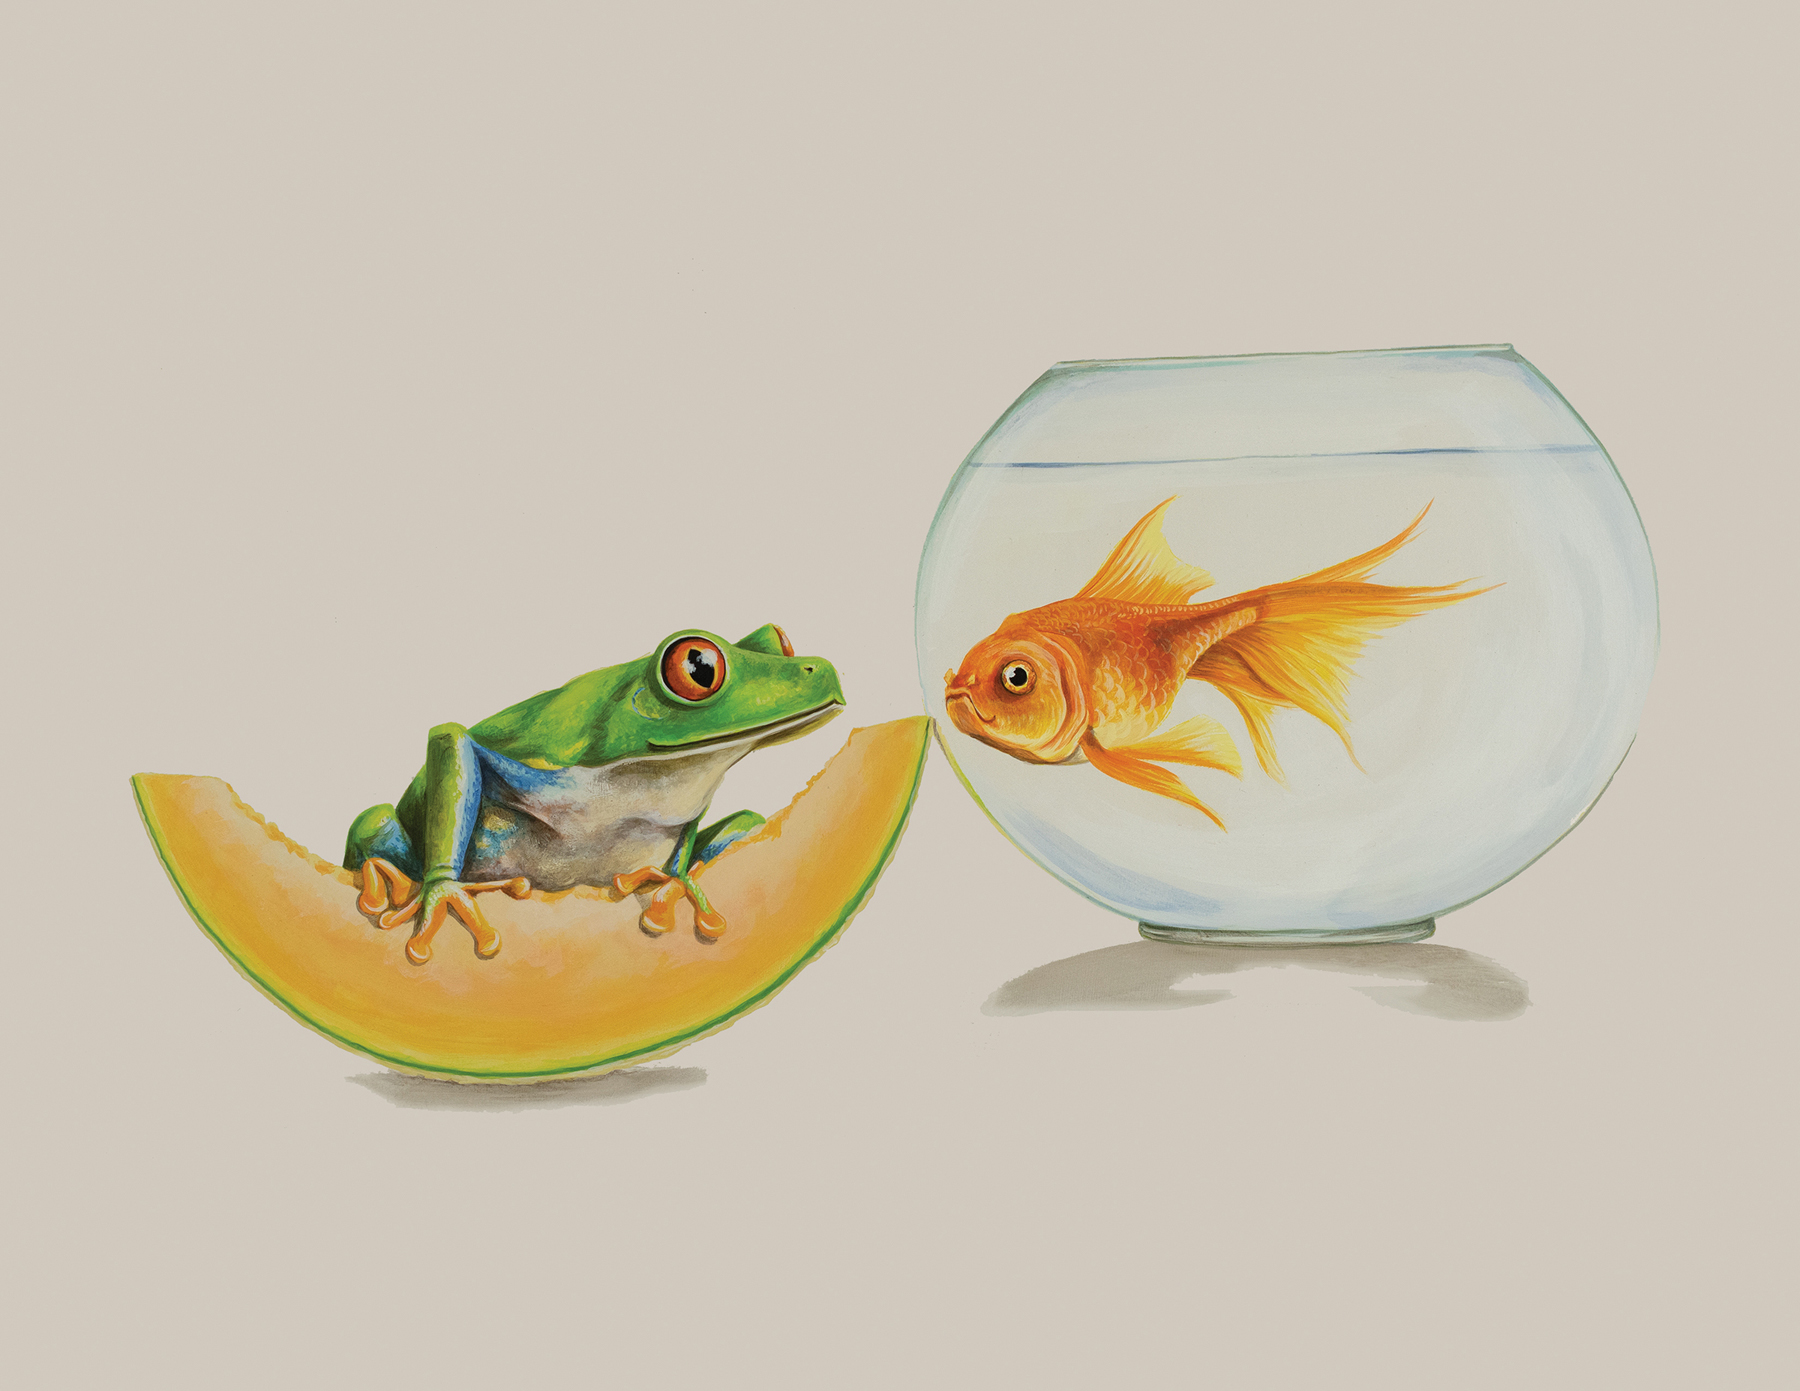 Tricia George: The Frog and the Goldfish